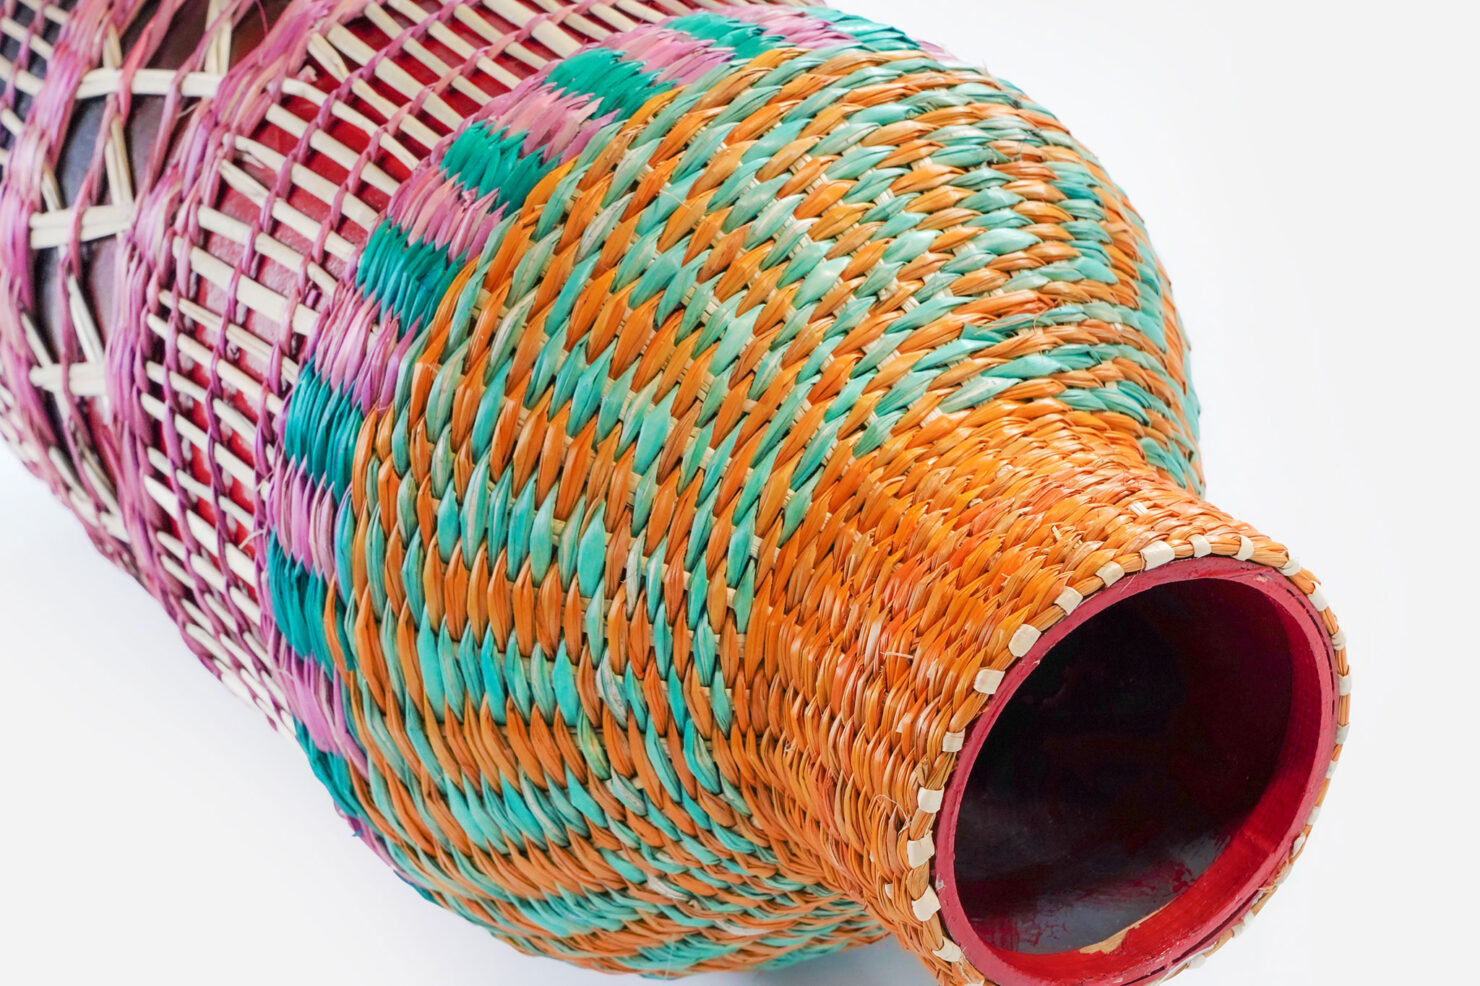 COLORED BRAID VASE 51 - BAZAR DE LUXE